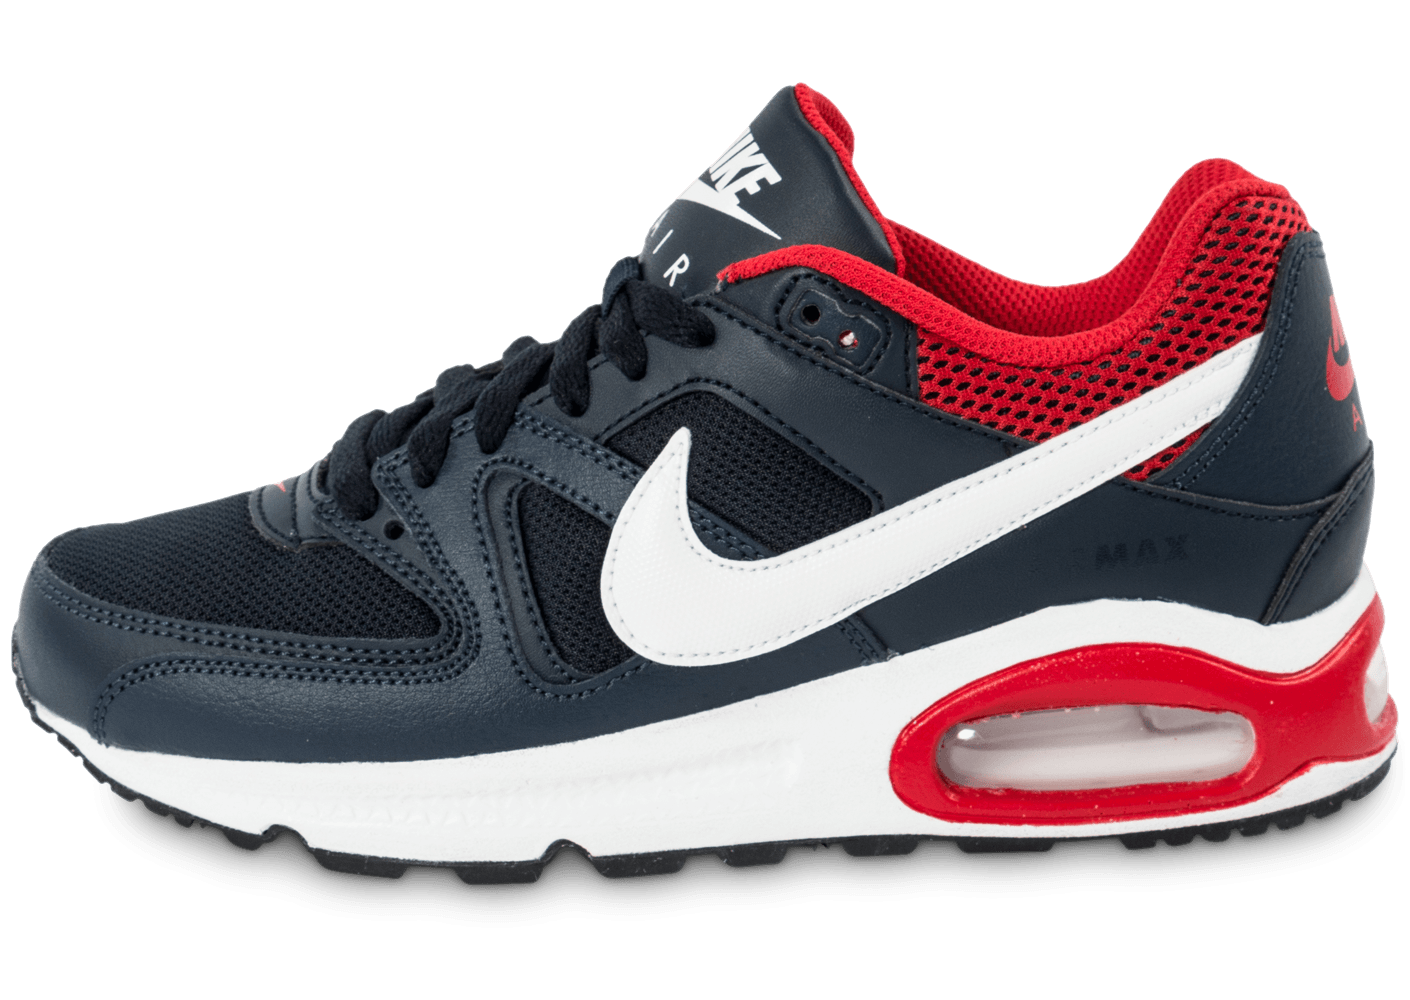 nike air max command junior bleu marine et rouge chaussures chaussures chausport. Black Bedroom Furniture Sets. Home Design Ideas